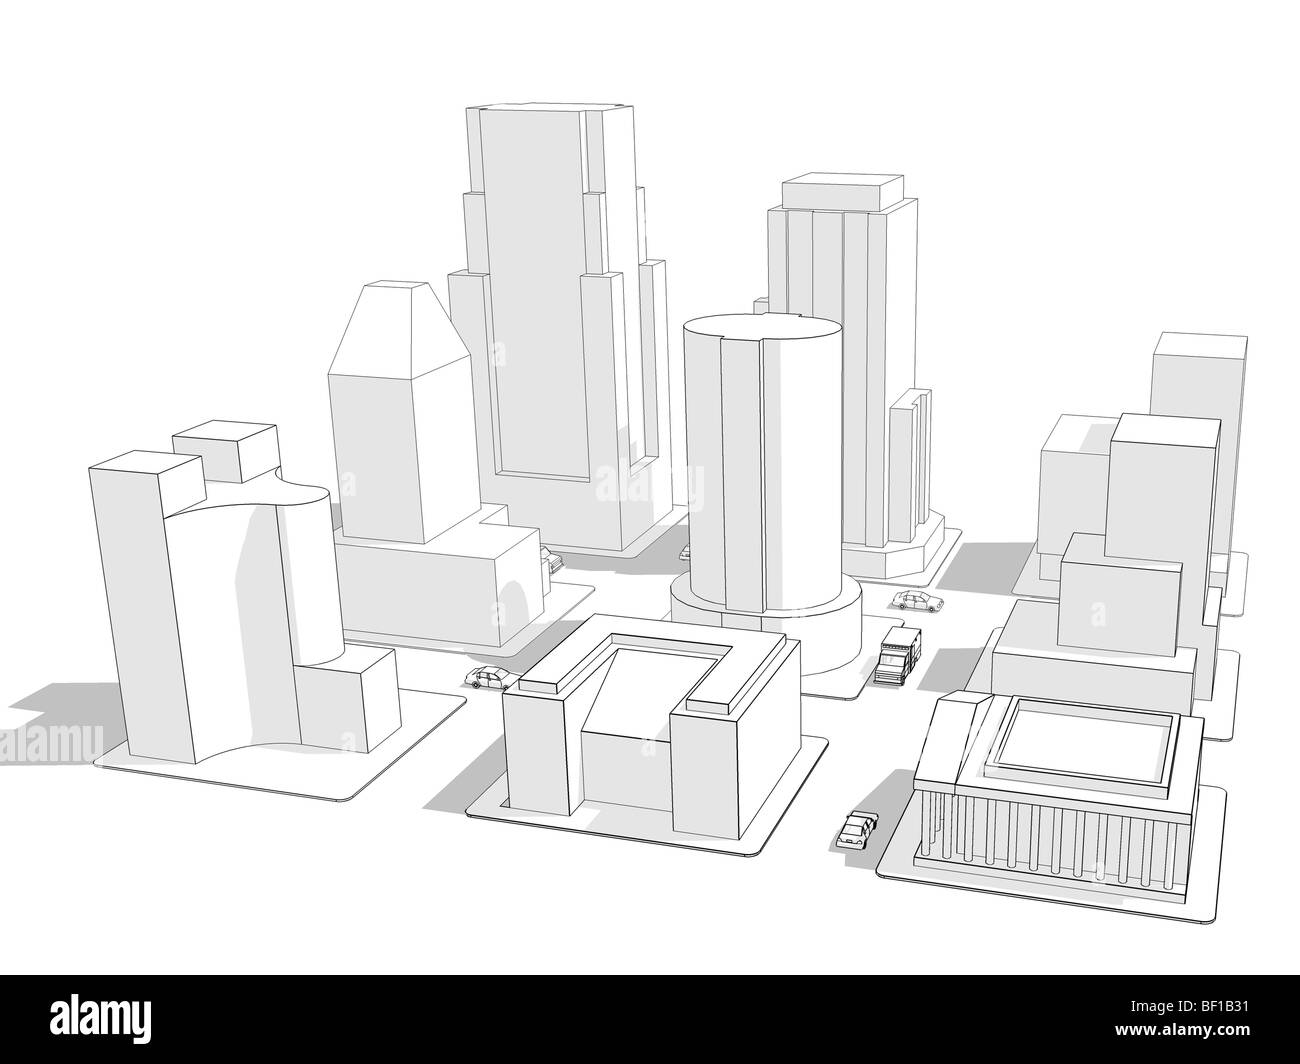 Wire frame rendering of nine city blocks with various building ...